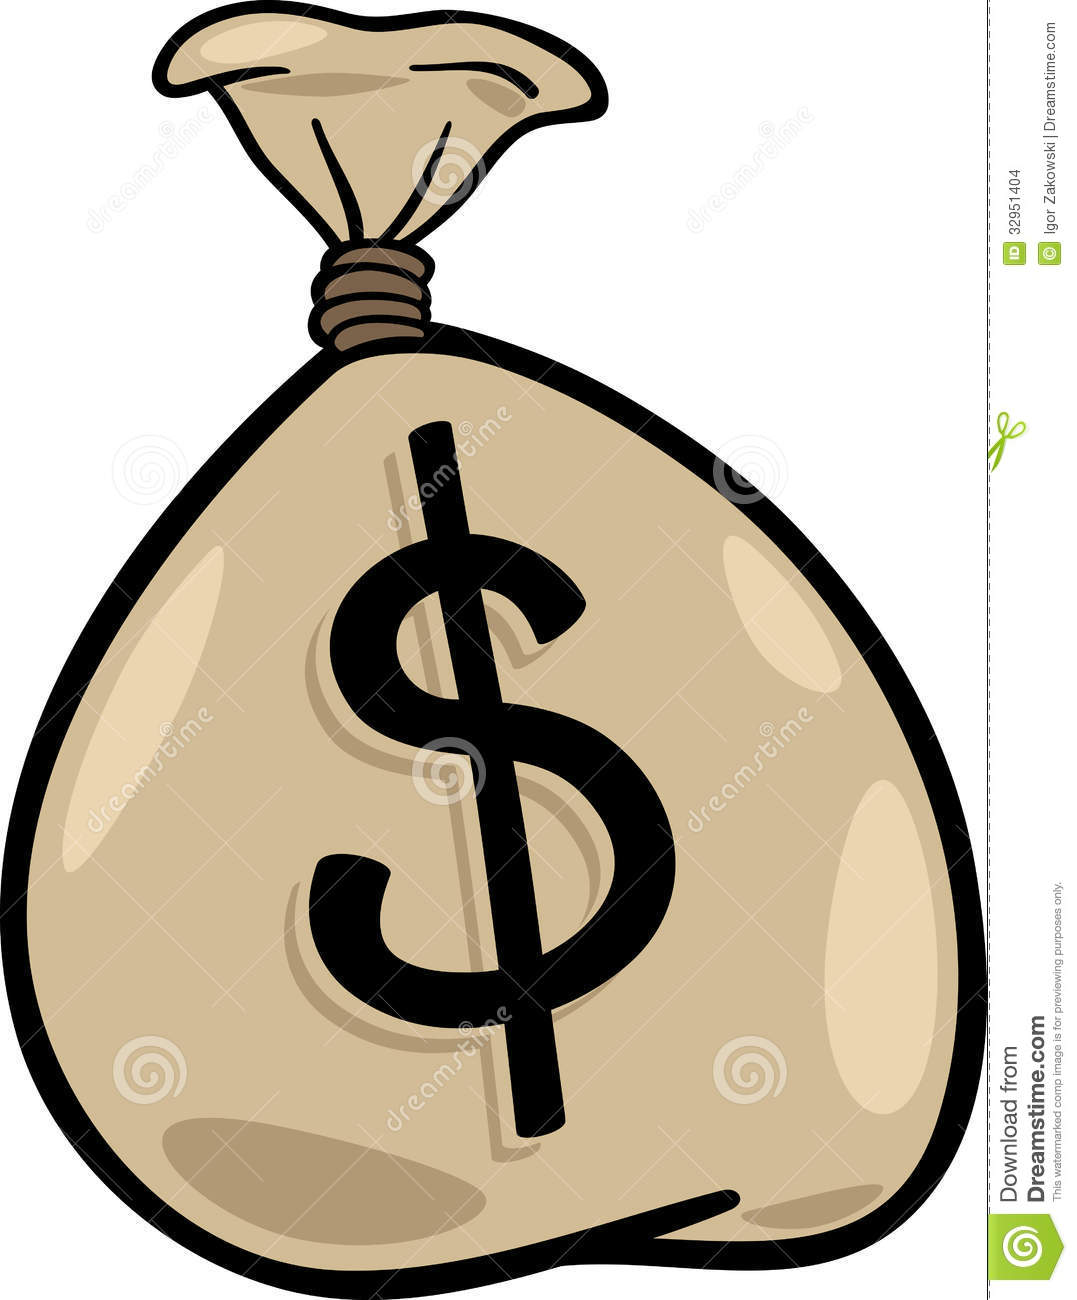 Free Clipart Of Money at GetDrawings com | Free for personal